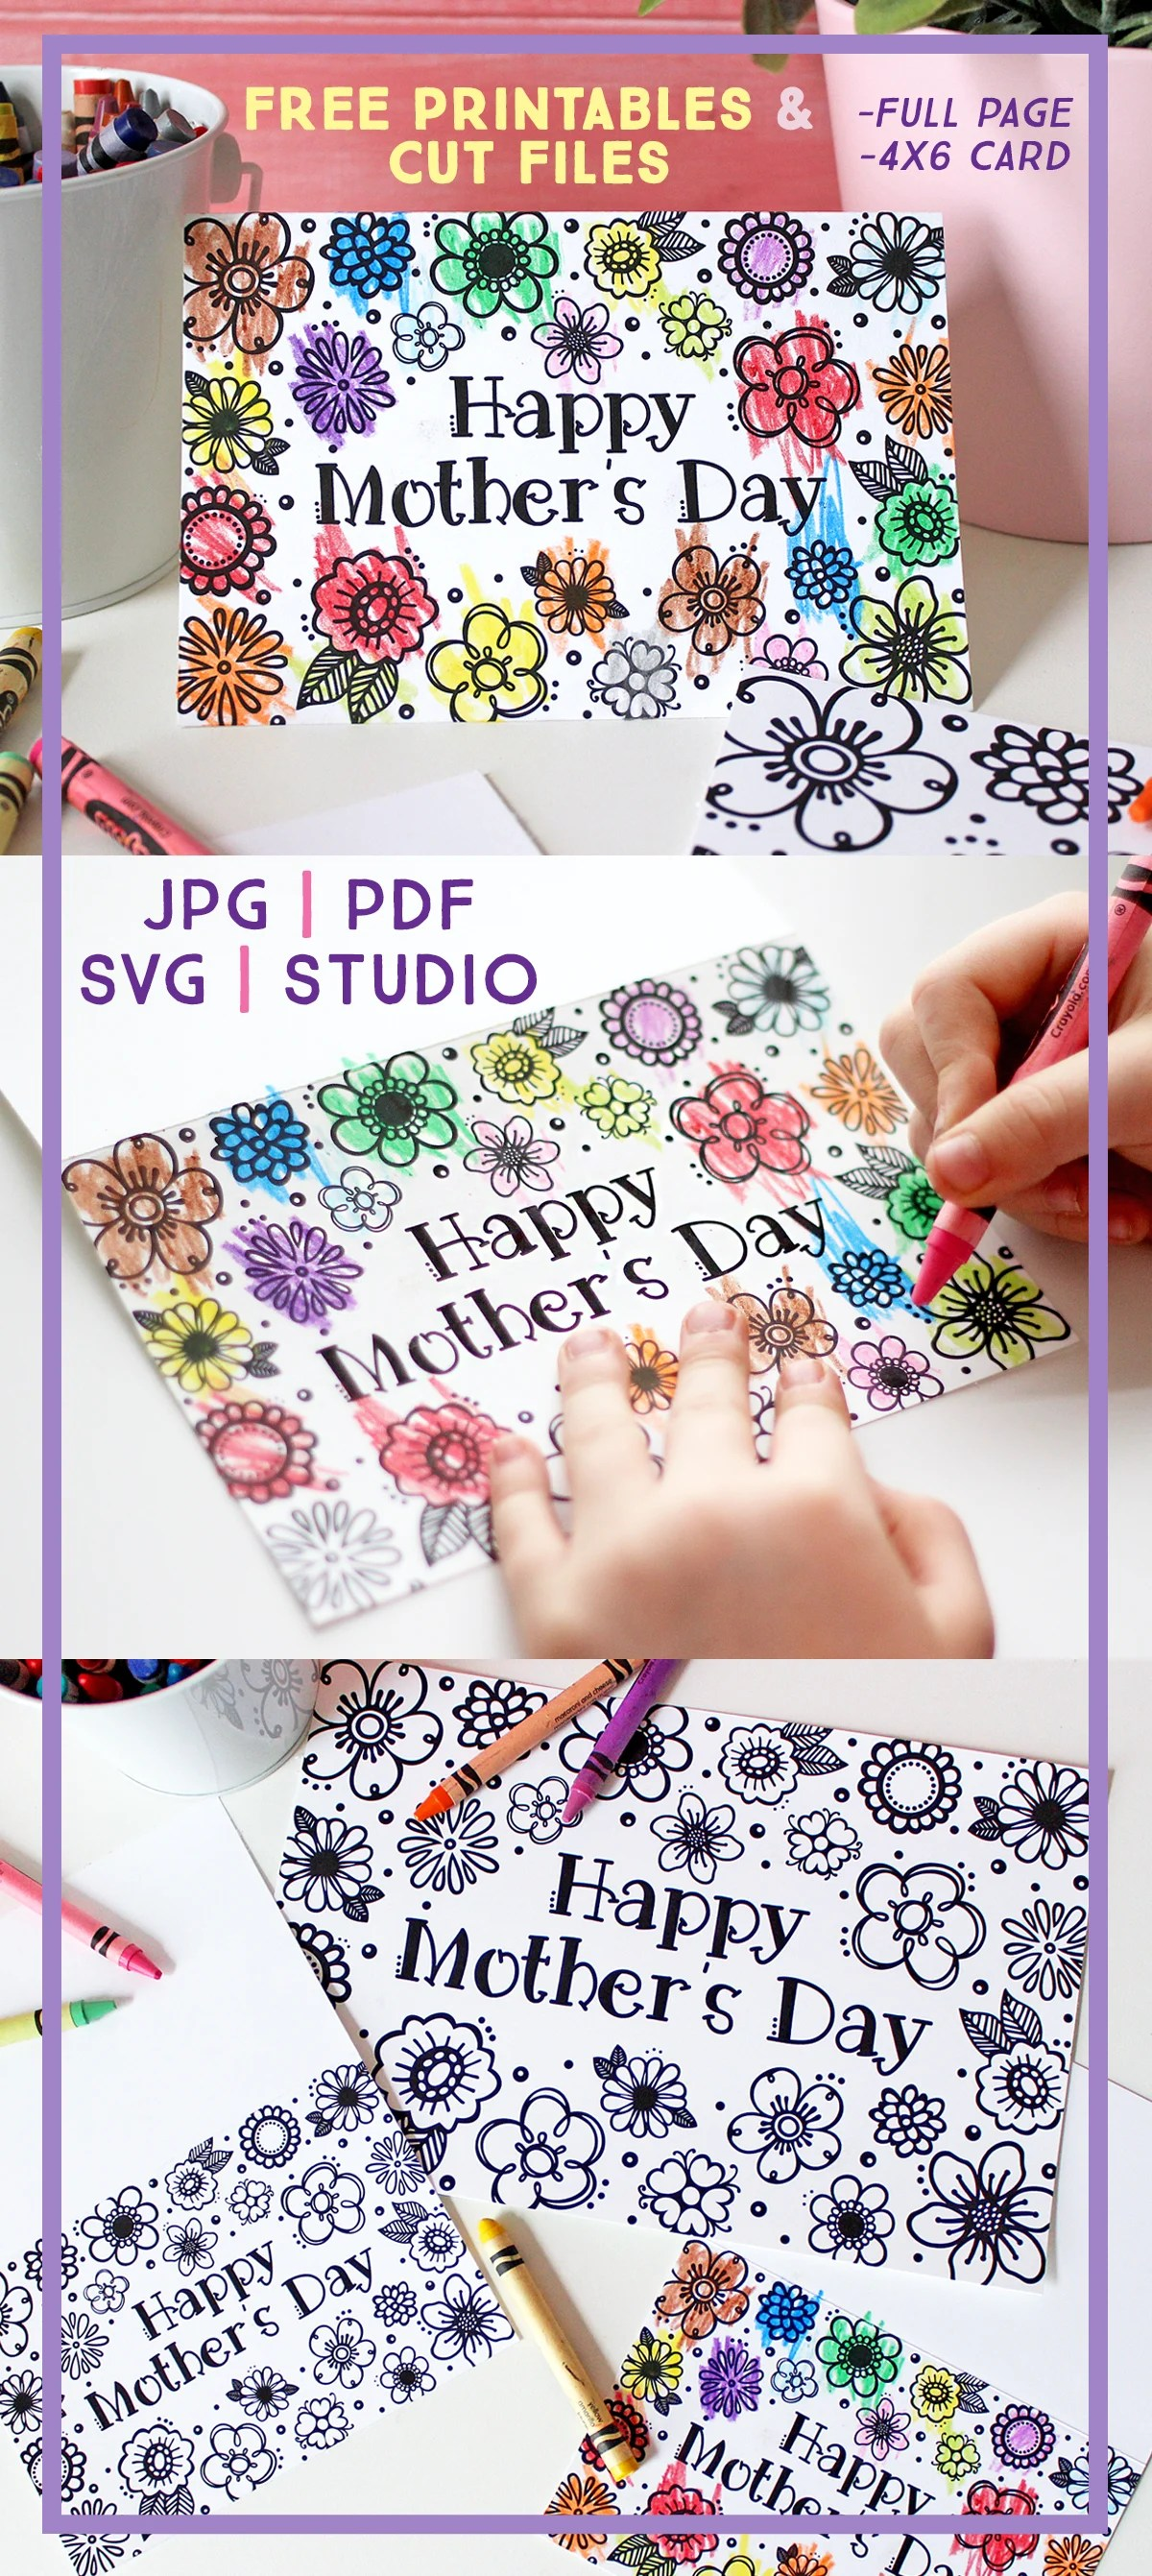 This is a picture of Printable Mothers Day Cards to Color Pdf with regard to color free